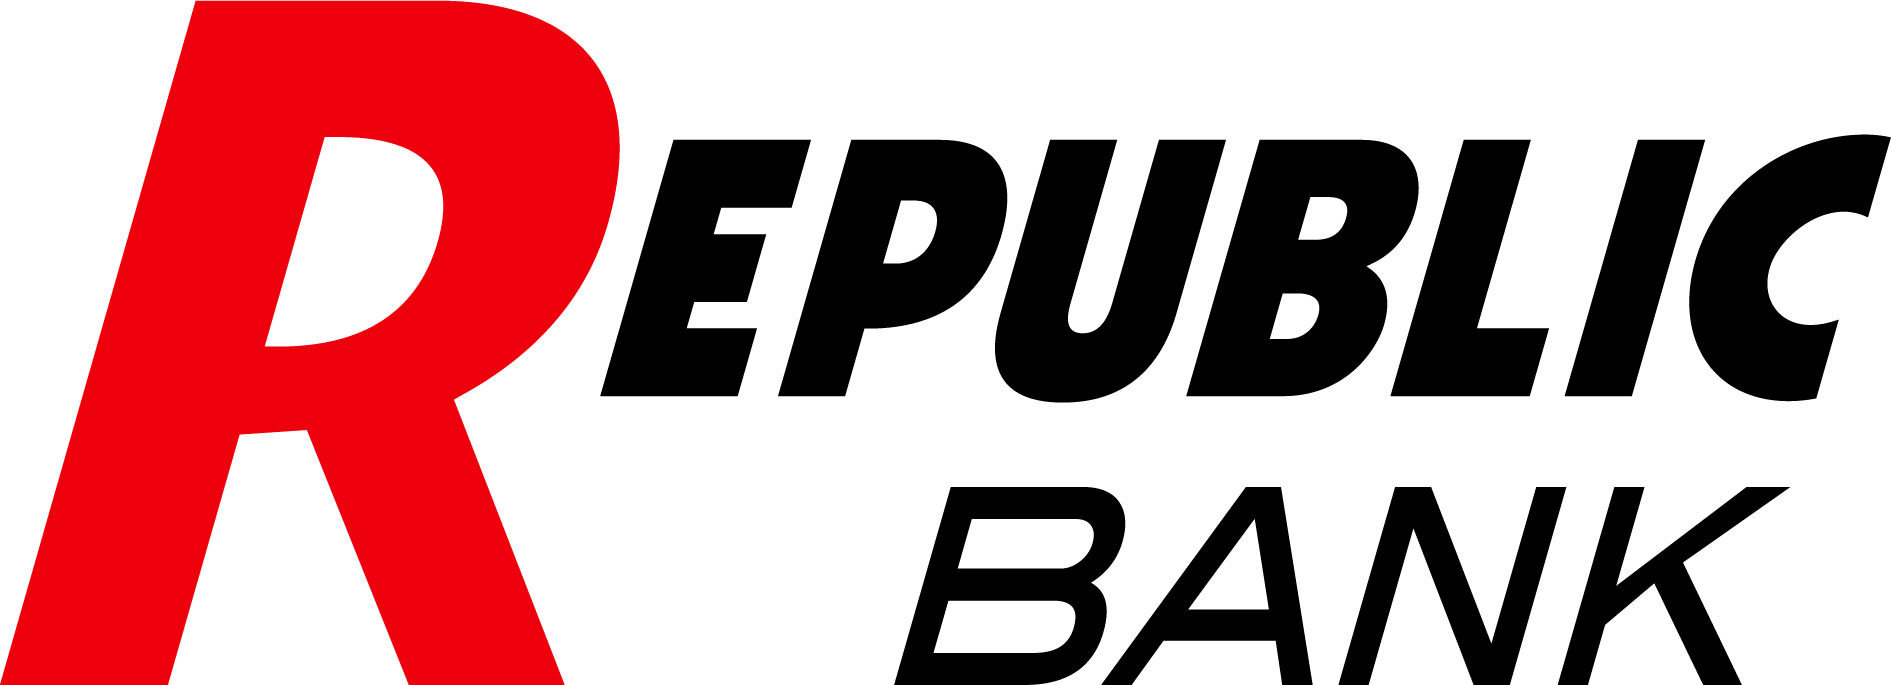 logo-sponsor-connector-republic-bank.jpg